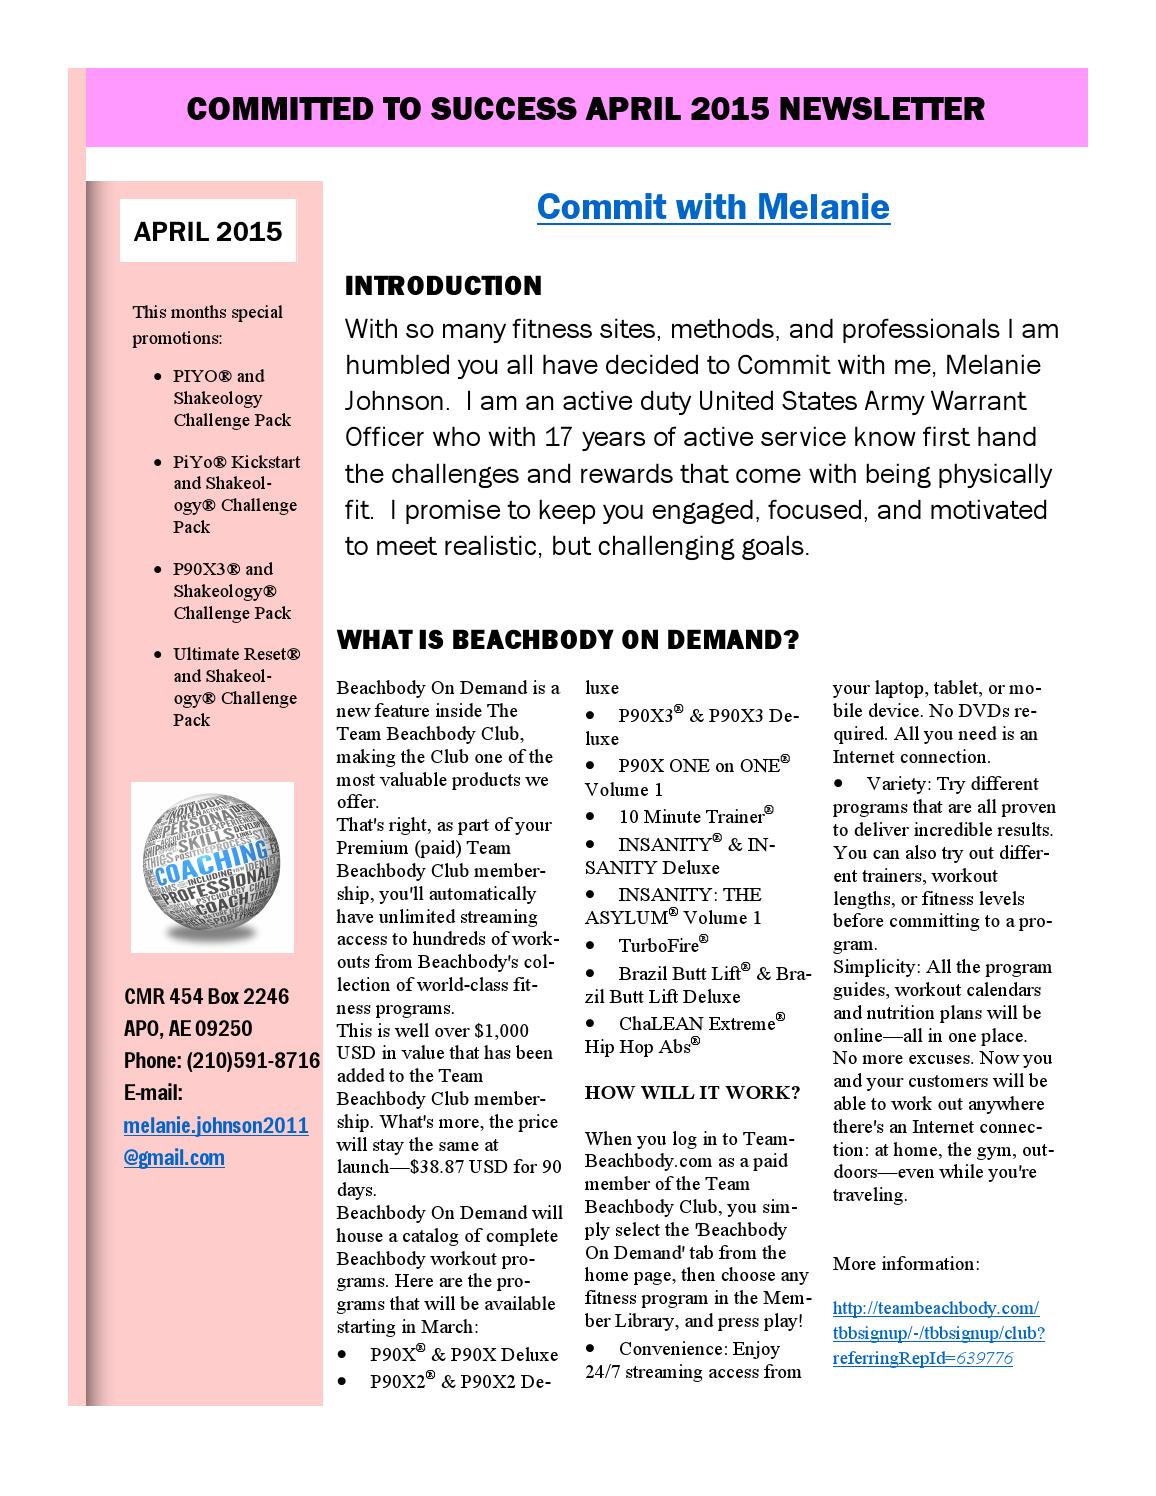 April 2015 commit with melanie beachbody newsletter by